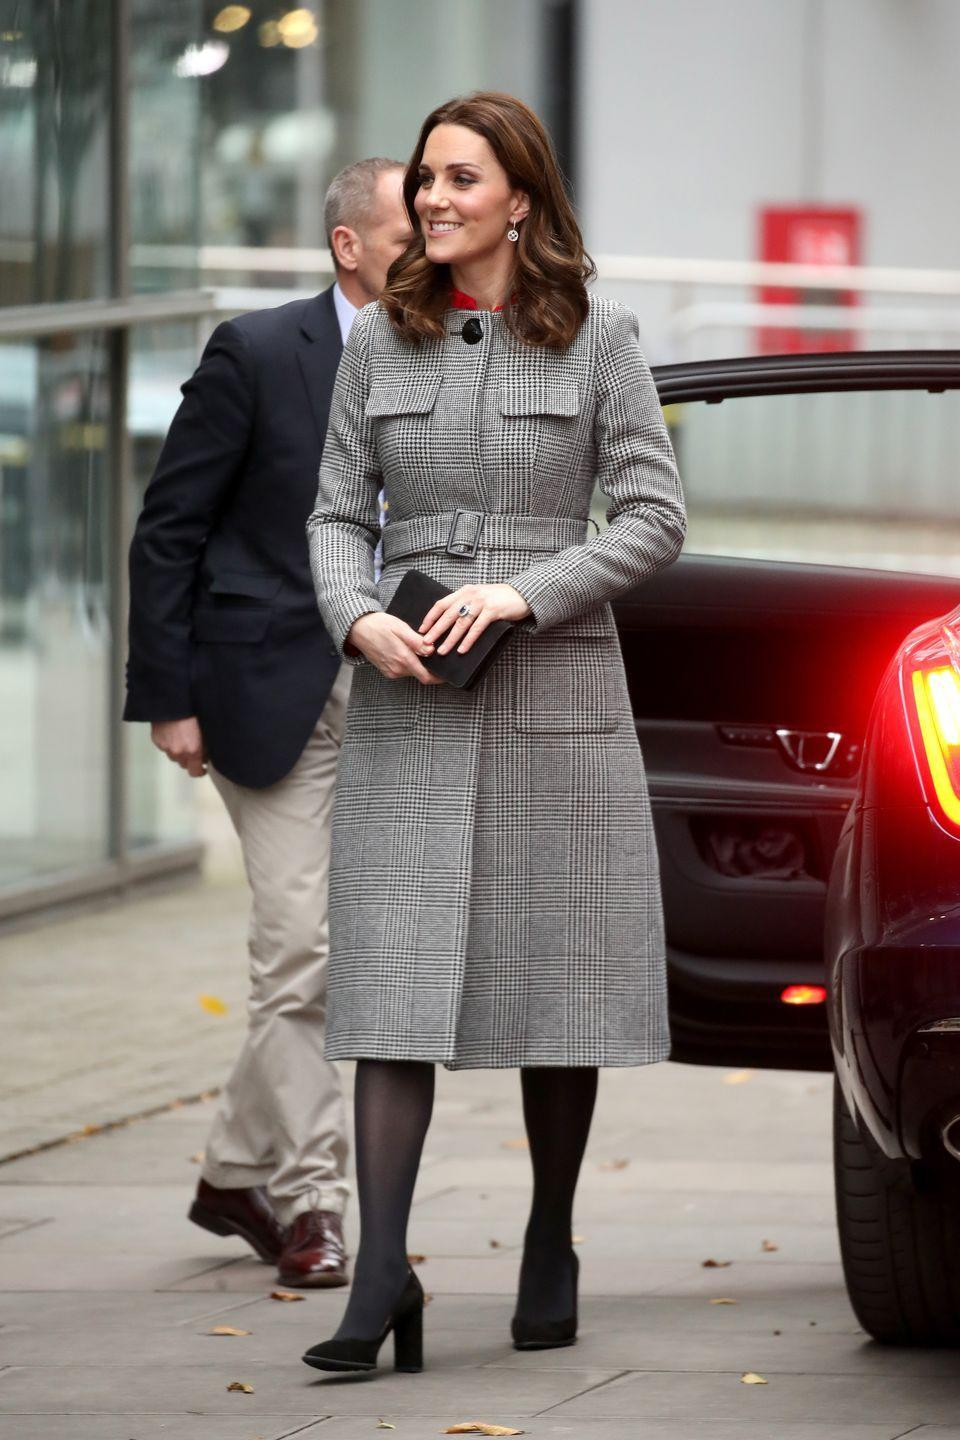 "<p>While attending the Children's Global Media Summit in Manchester, Kate wore <a href=""https://www.lkbennett.com/product/CCDELLIACRYLICMIXPrintBlack%20White~Delli-Check-Coat-Black%20White"" rel=""nofollow noopener"" target=""_blank"" data-ylk=""slk:a gray checkered coat from L.K. Bennett"" class=""link rapid-noclick-resp"">a gray checkered coat from L.K. Bennett</a> paired with sheer black tights and pumps.</p>"